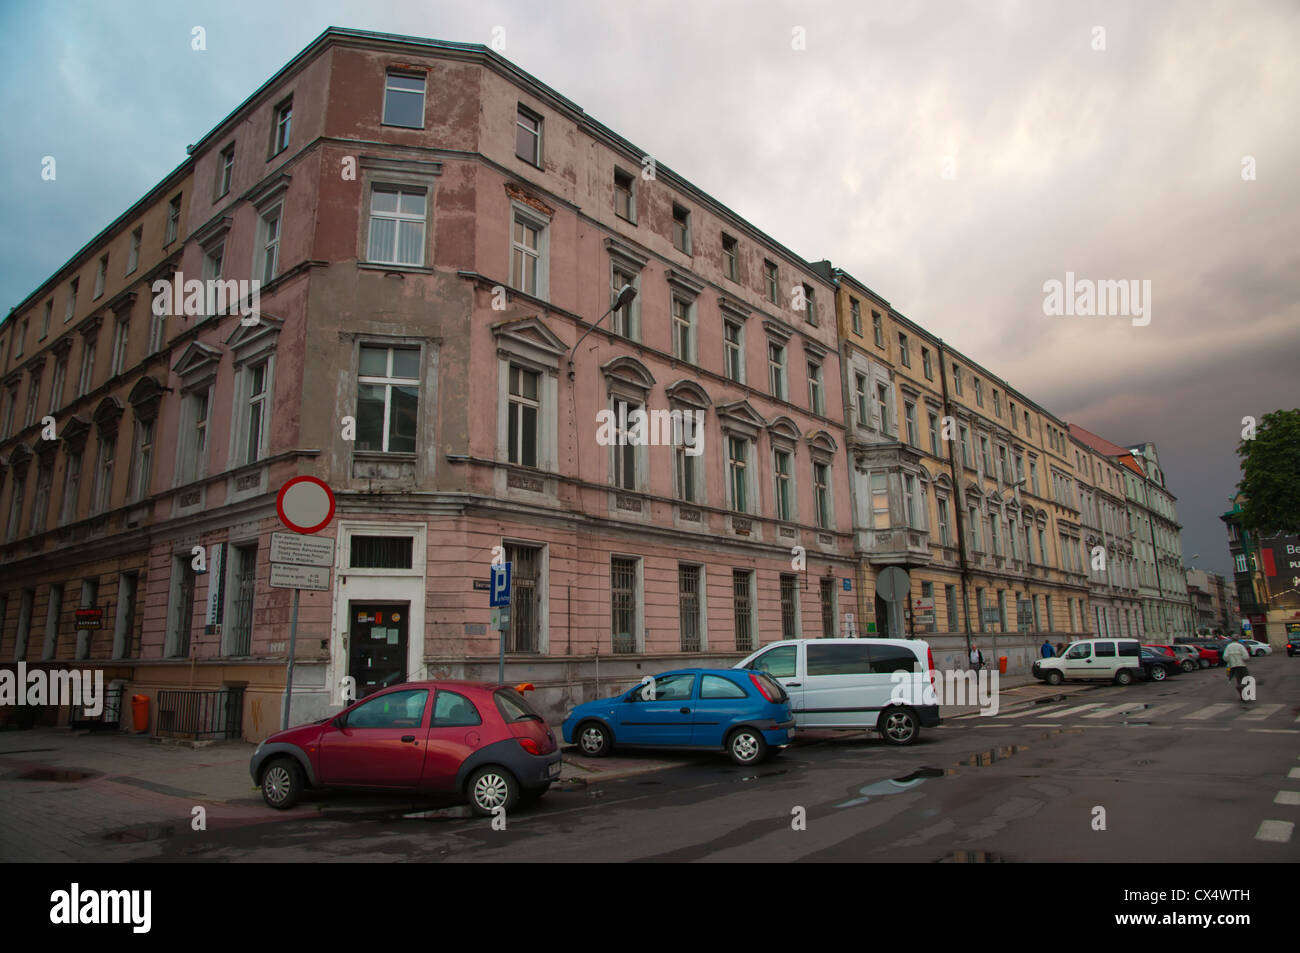 Ulica Mariacka street central Katowice city Silesia region Poland Europe - Stock Image